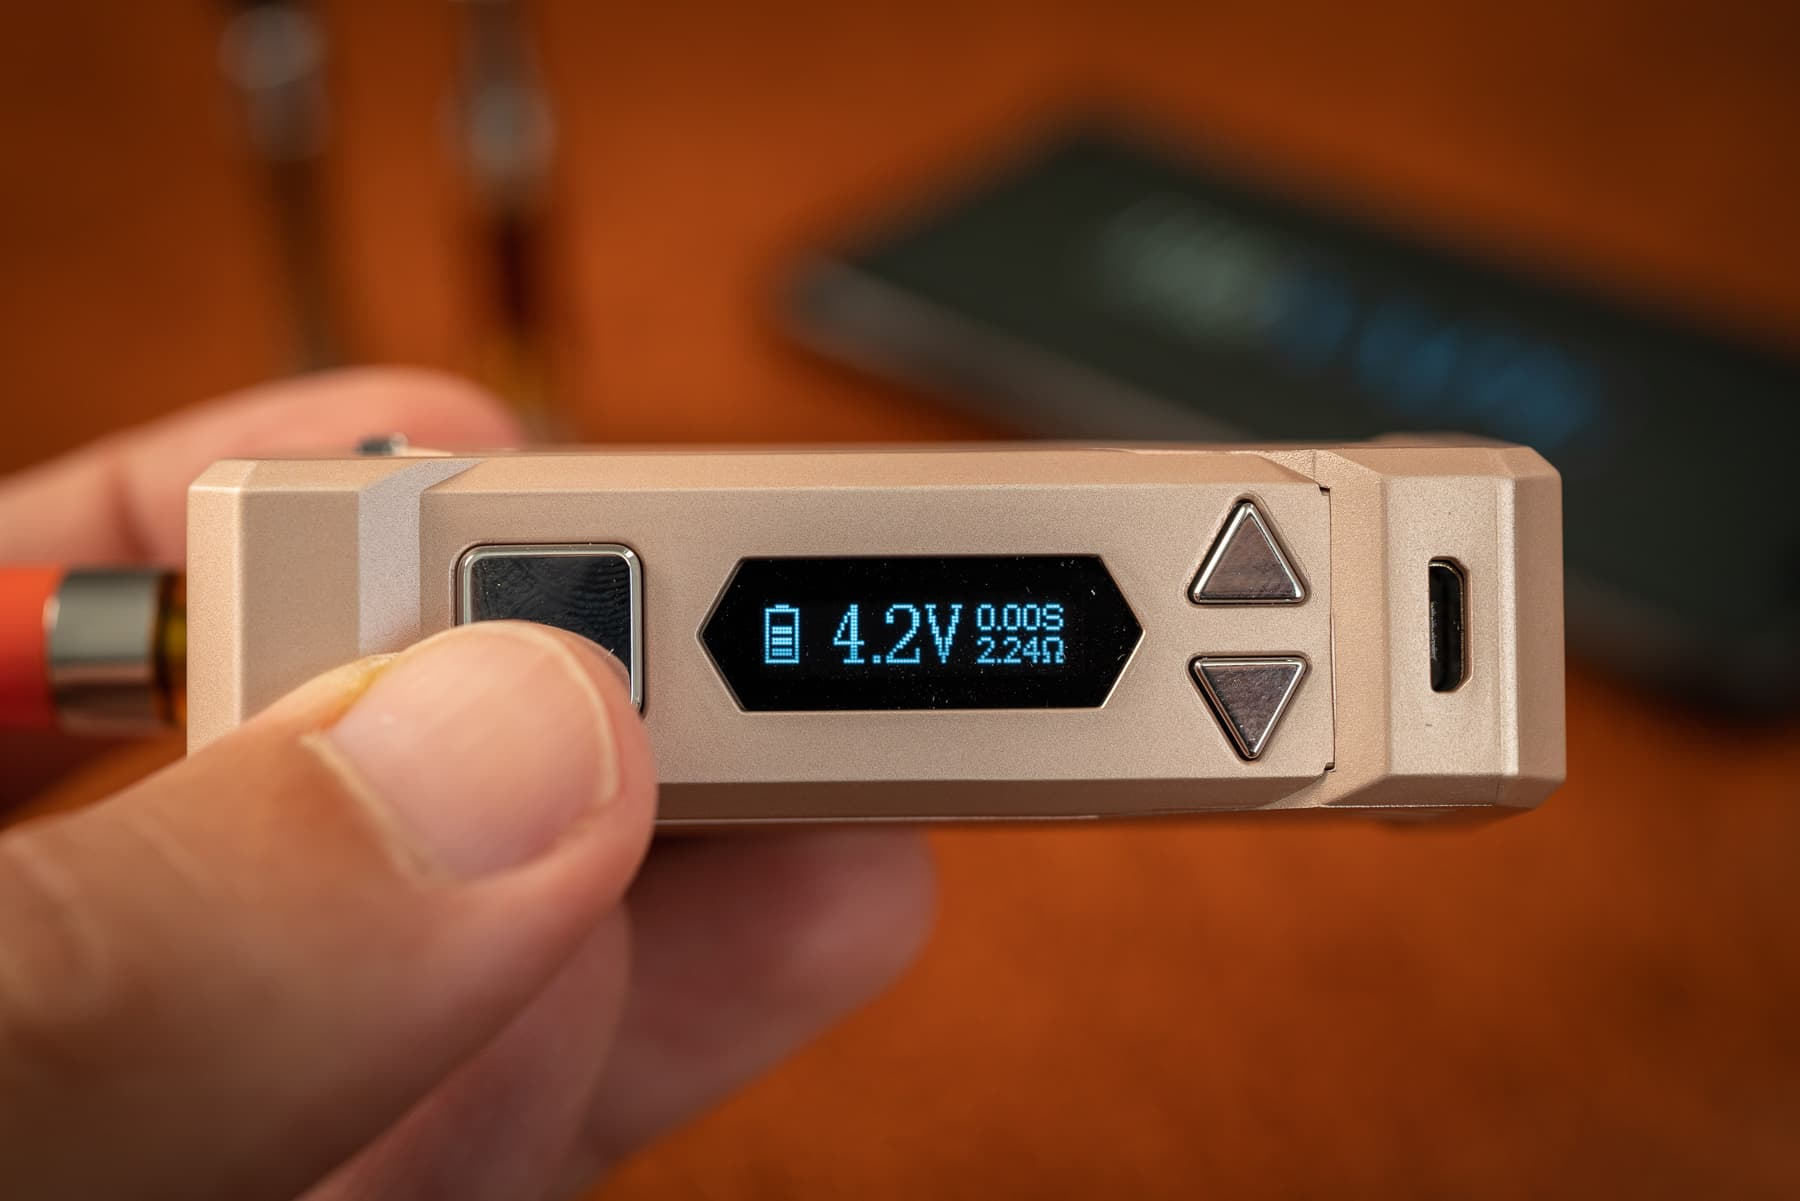 Yocan Uni Pro Performance and Vapor Quality